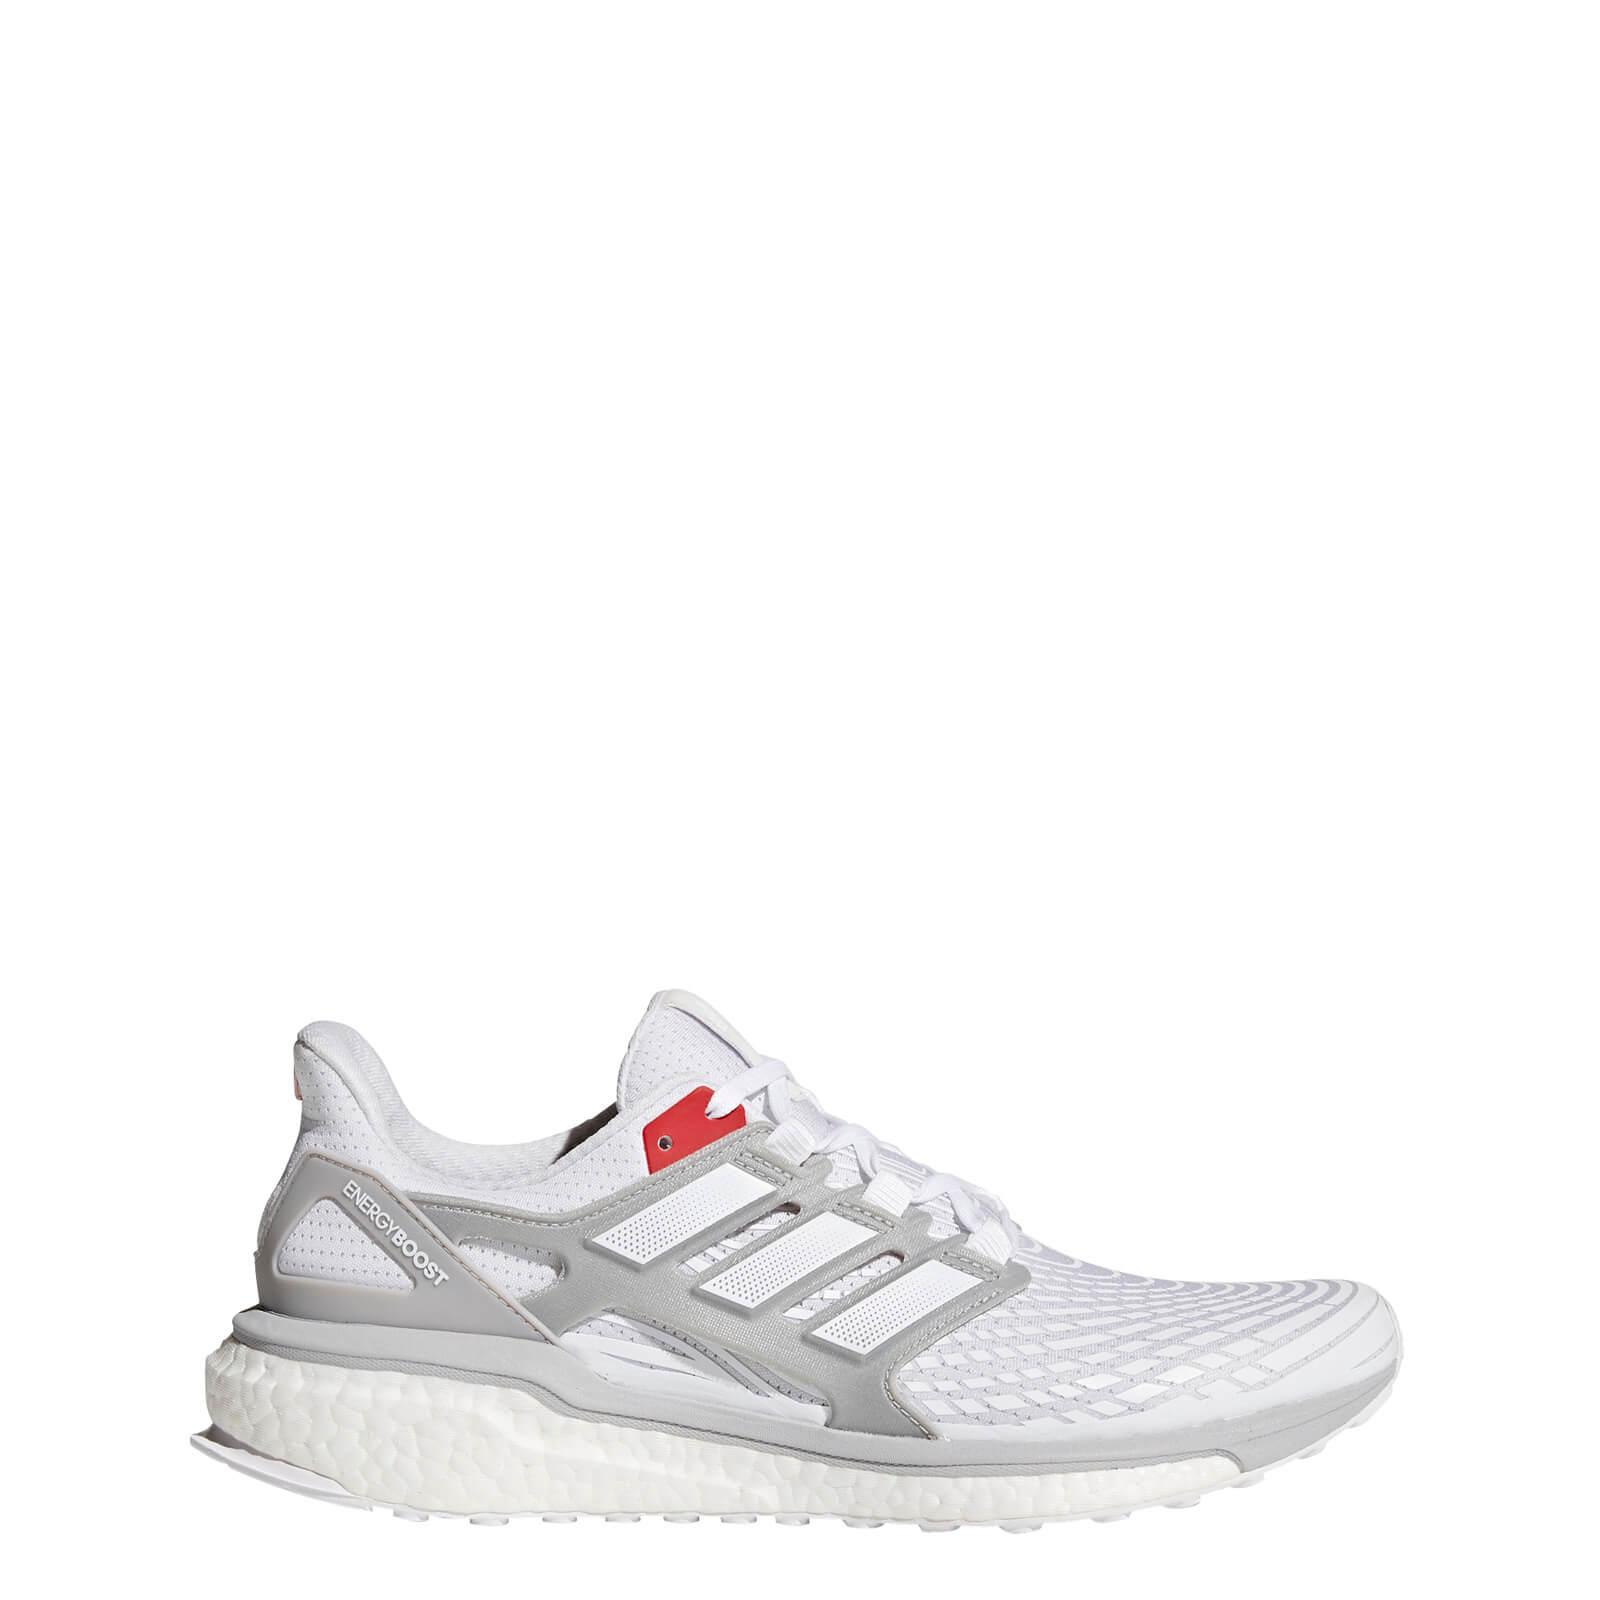 pas mal c0705 1a323 adidas Energy Boost Aktiv Running Shoes - White/Grey